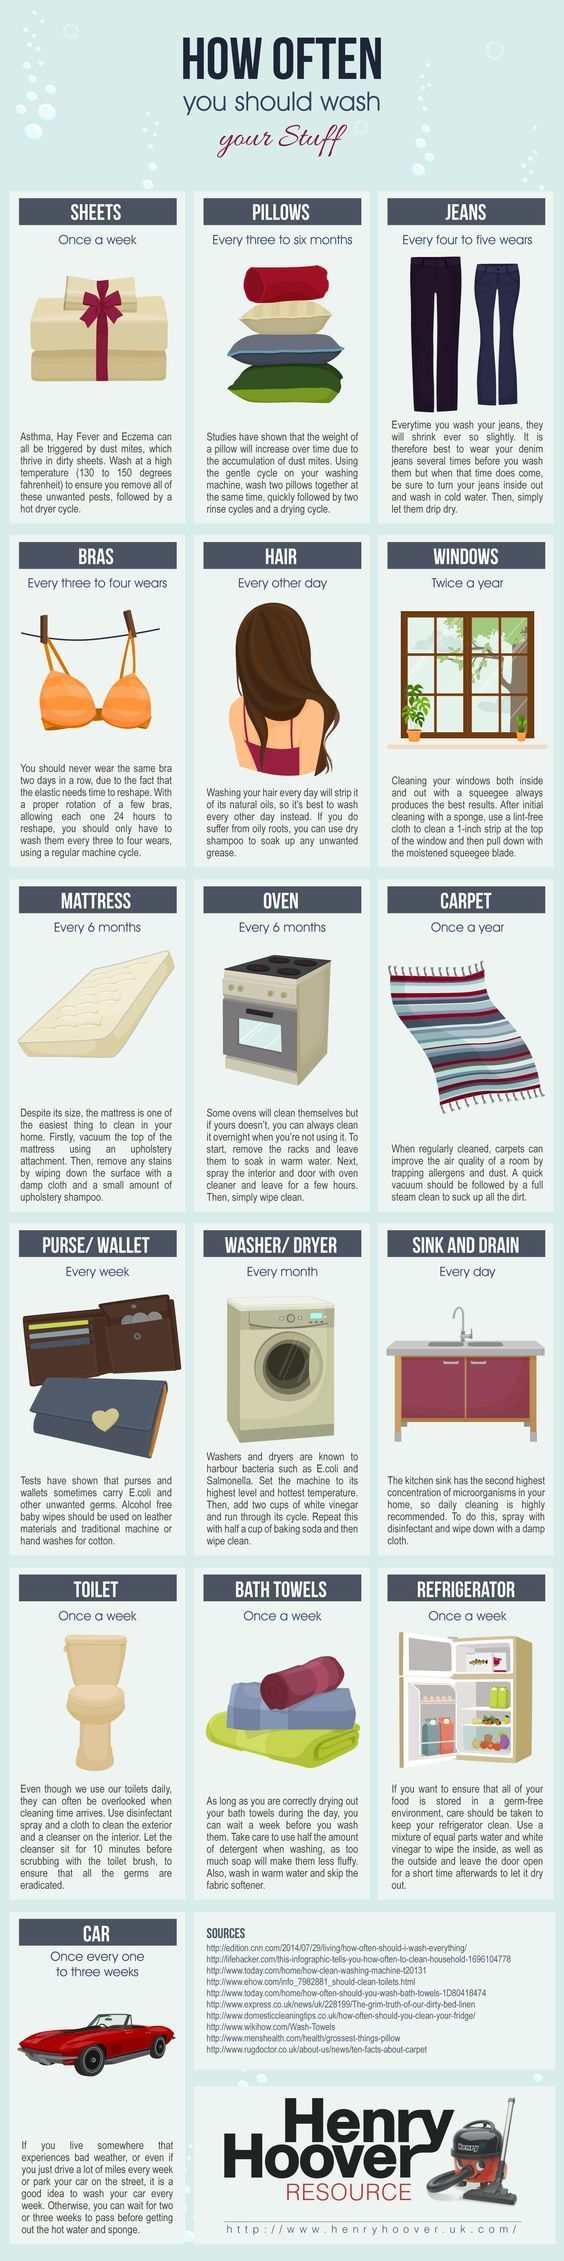 These 10 Cleaning Hacks that every girl should know are SO GOOD! I'm so glad I found this GREAT POST! I've already gotten a stain out of my favorite dress that I NEVER thought would come out! So happy I found this! Pinning!